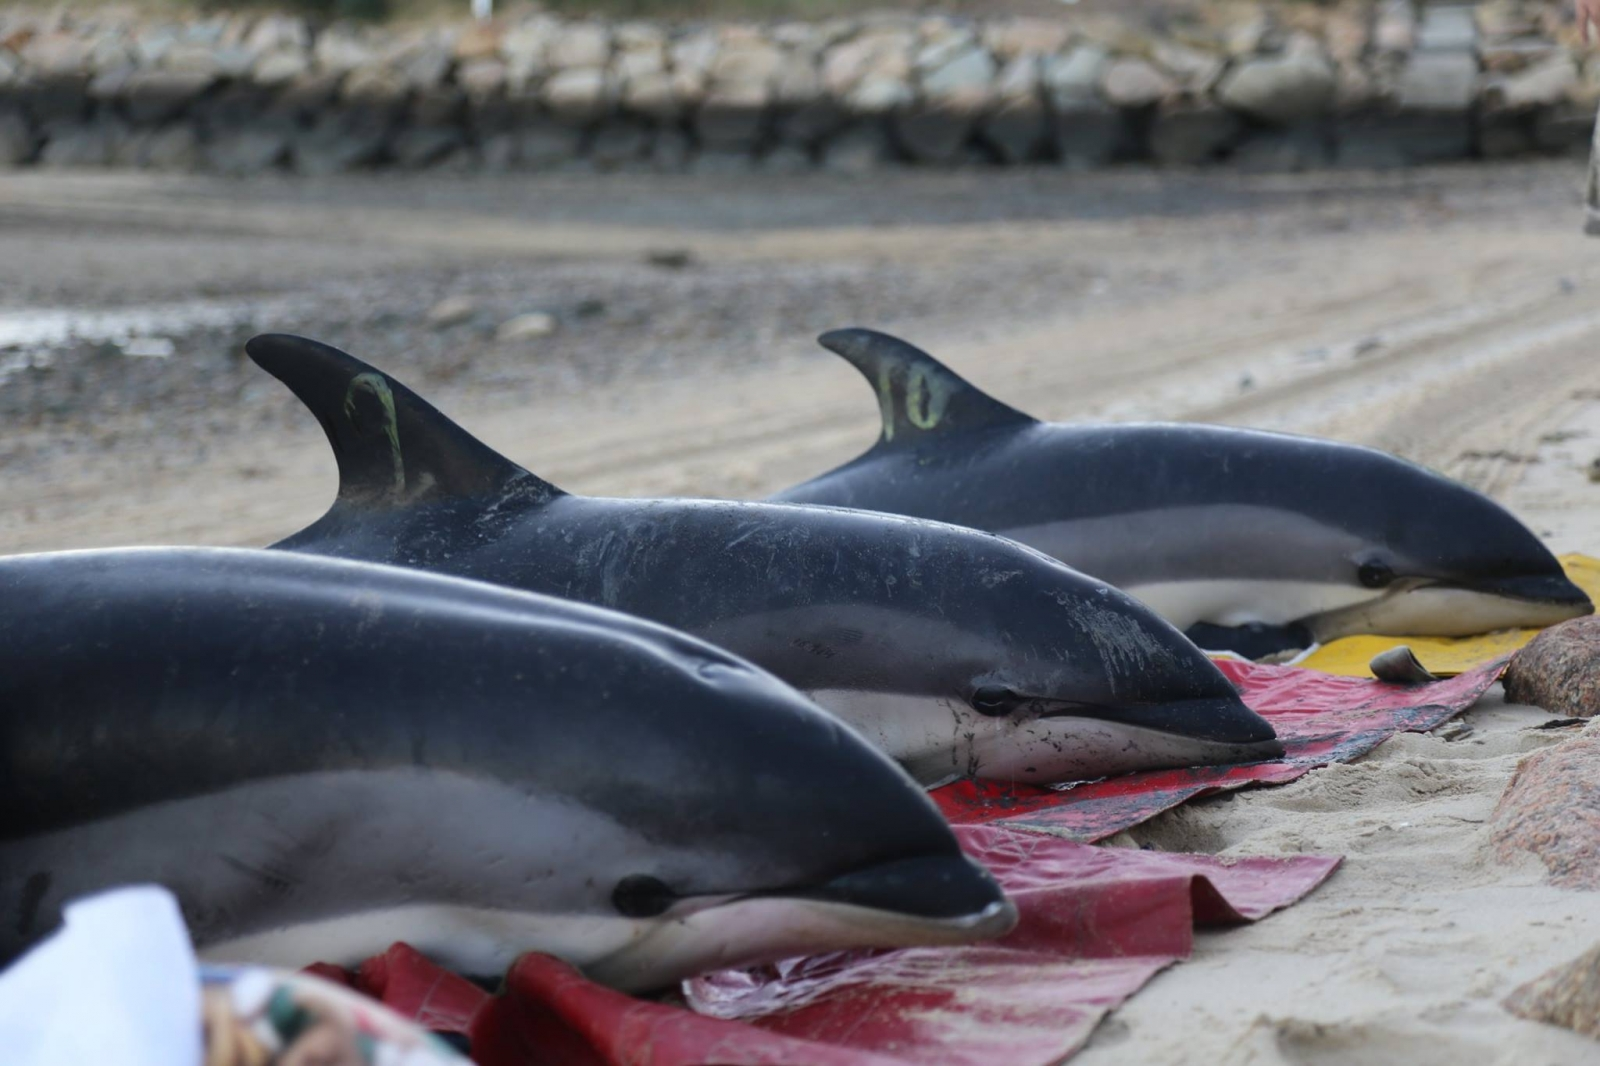 Beached dolphins - photo#27